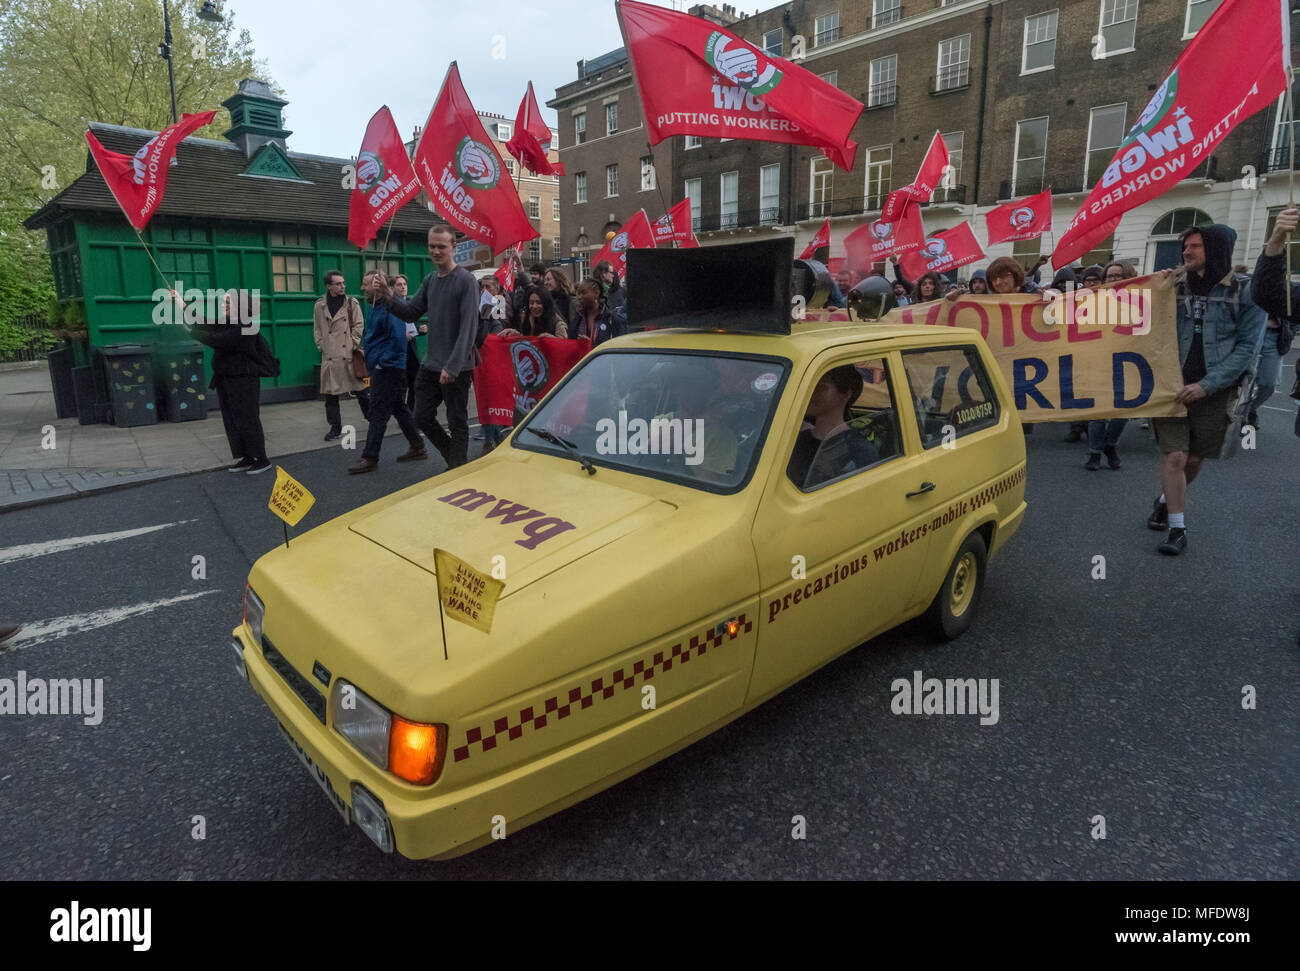 London, UK. 25th April 2018. The Precarious Workers Mobile leads a march from the rally  by workers, students and other trade unionists supporting over 100 cleaners, porters, security officers, receptionists, gardeners, post room staff and audiovisual staff in the Independent Workers Union of Great Britain - IWGB at the end of the first day of a two day strike at the University of London central administration. The workers, employed by various outsourcing companies are demanding to be directly employed by the University, and receive the same conditions and benefits as directly employed colleag - Stock Image